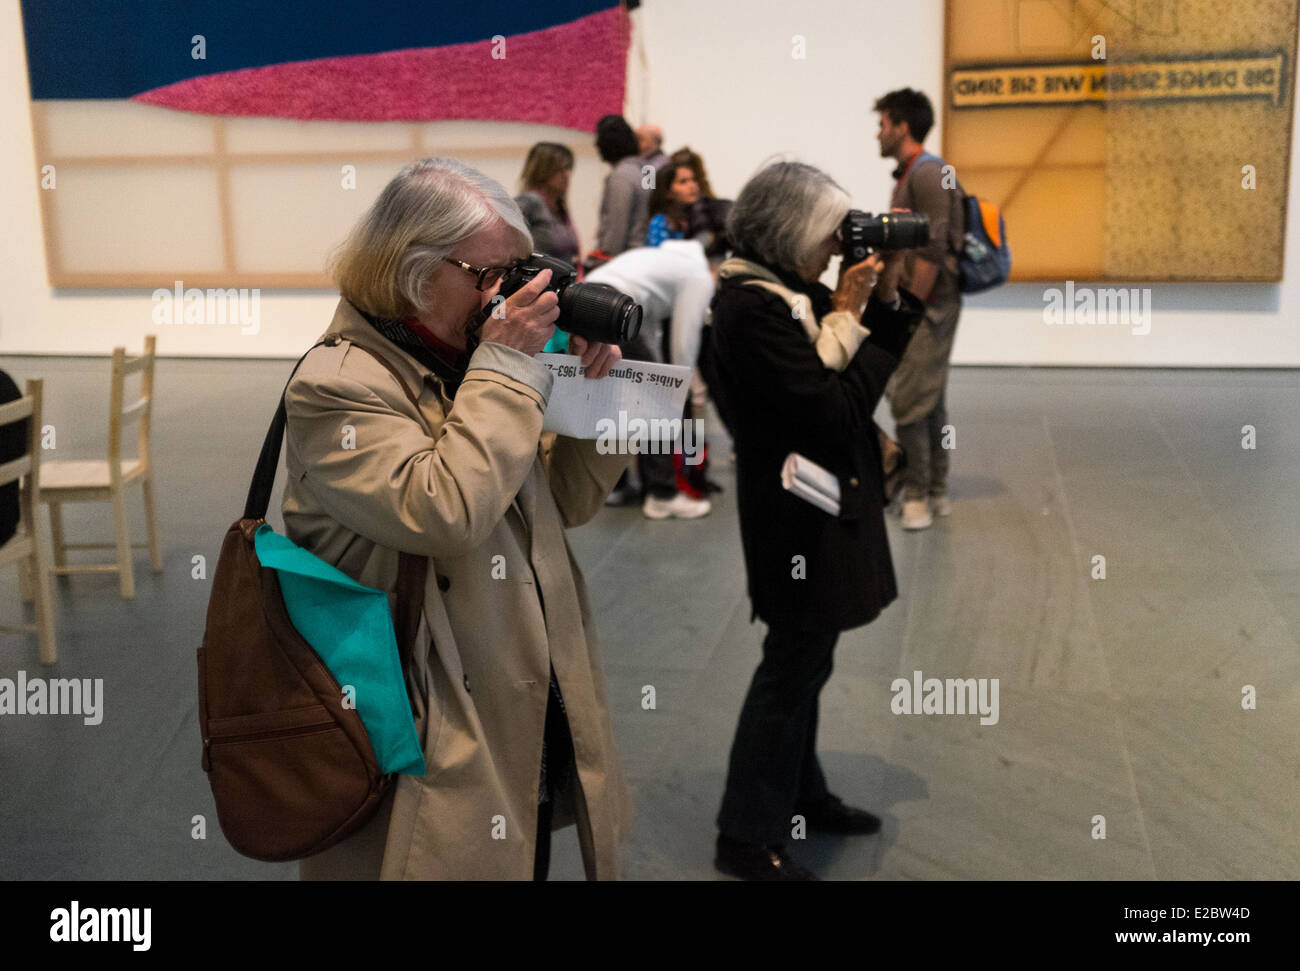 Two women take photographs at an exhibit in the Museum of Modern Art in New York. - Stock Image